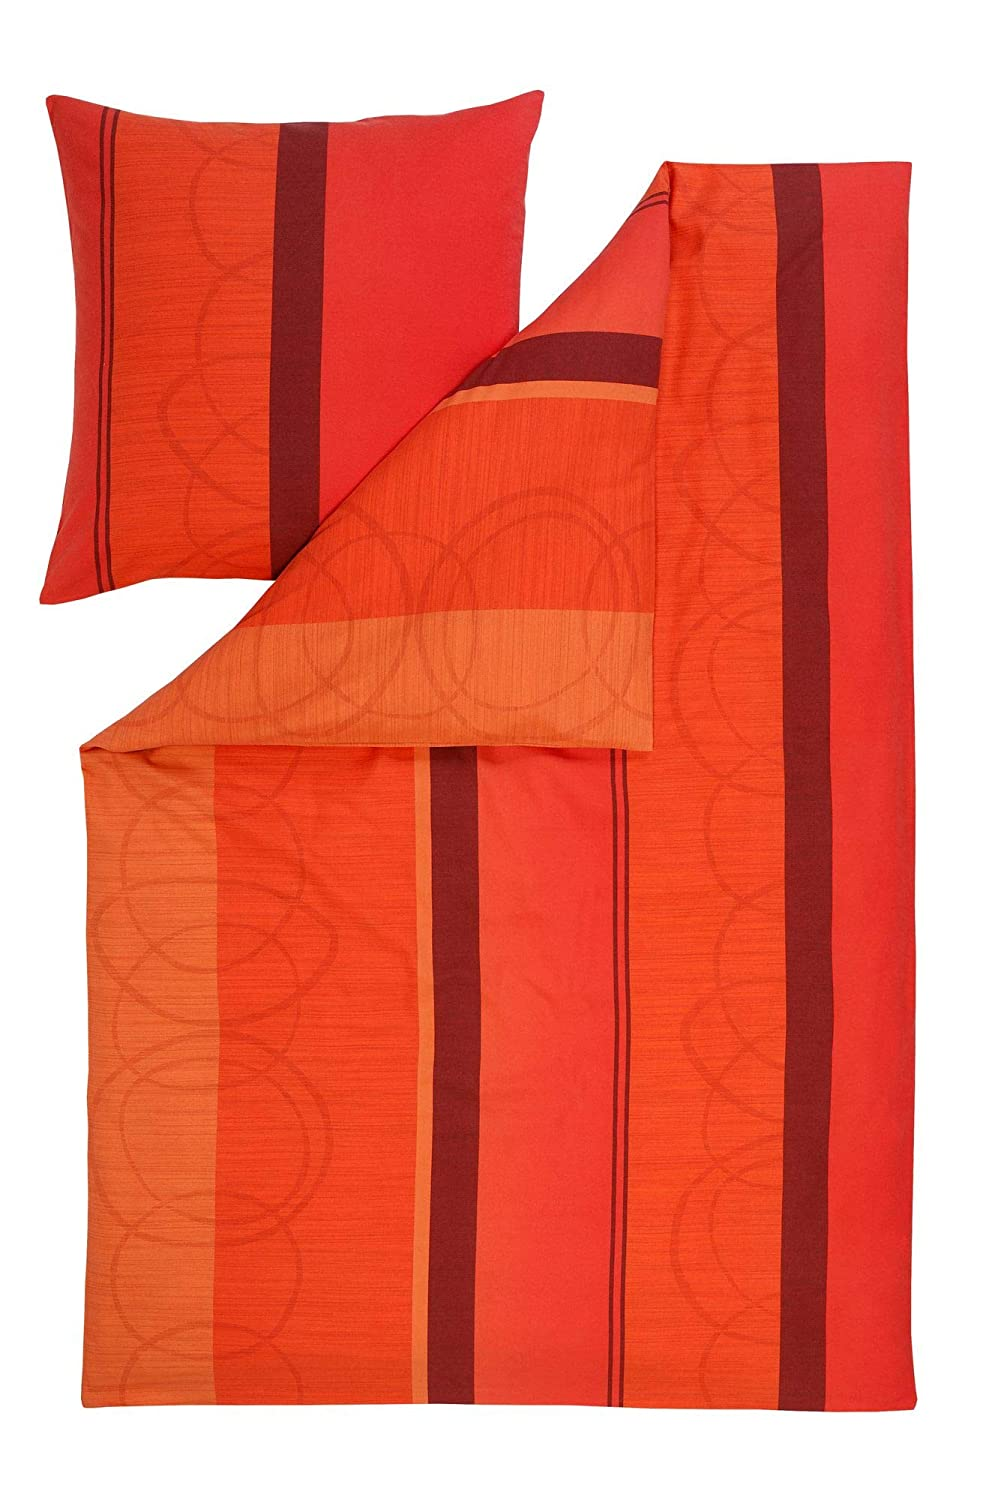 Estella Feinflanell Bettwäsche Dolomiti Orange 155x220 cm + 80x80 cm